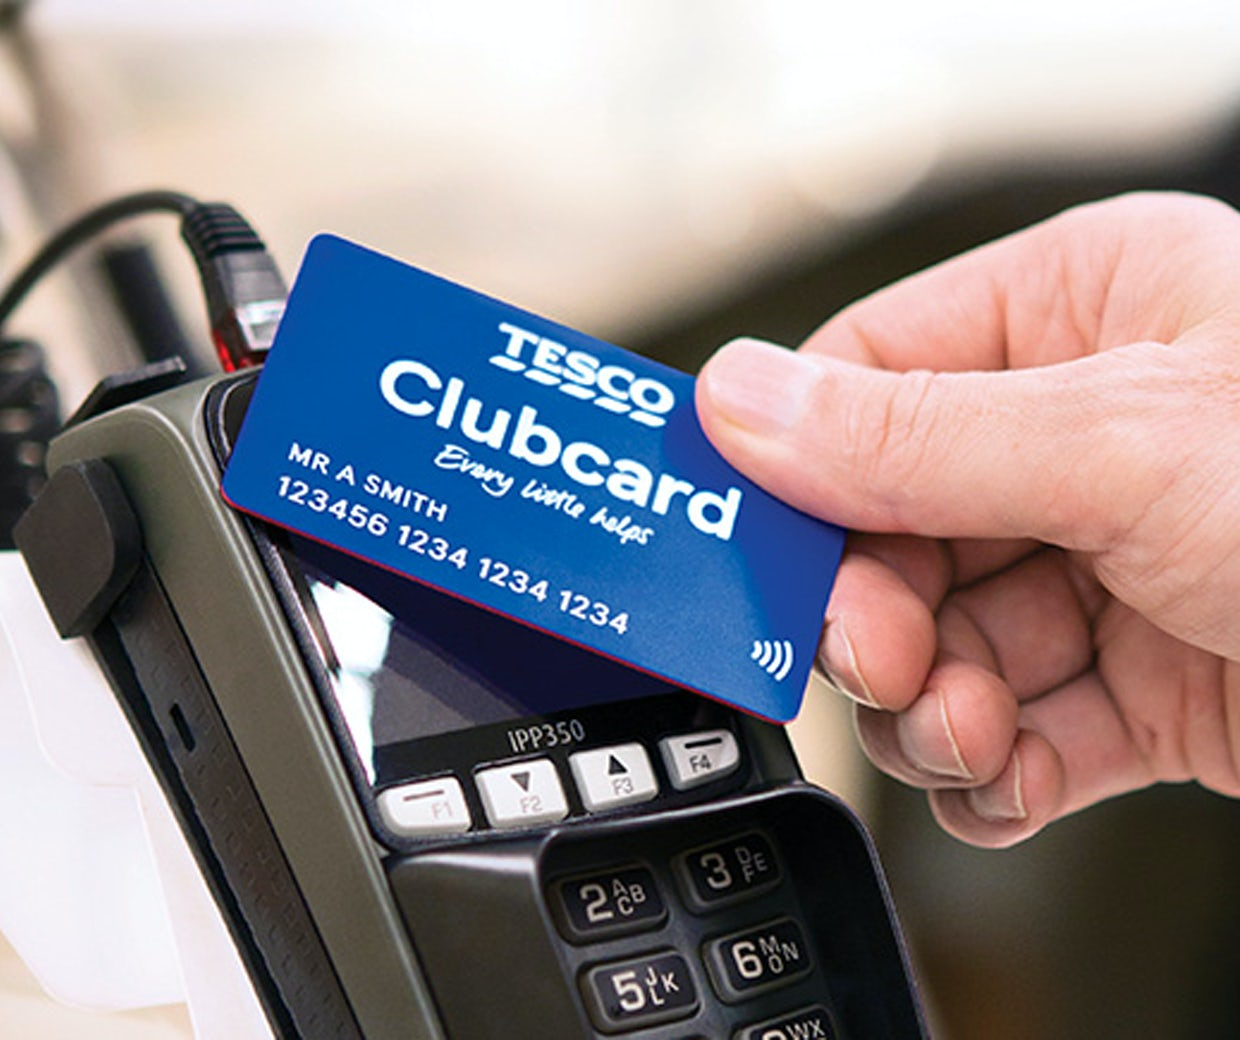 What Happened To Tesco's Big Plans For A Digital Clubcard?